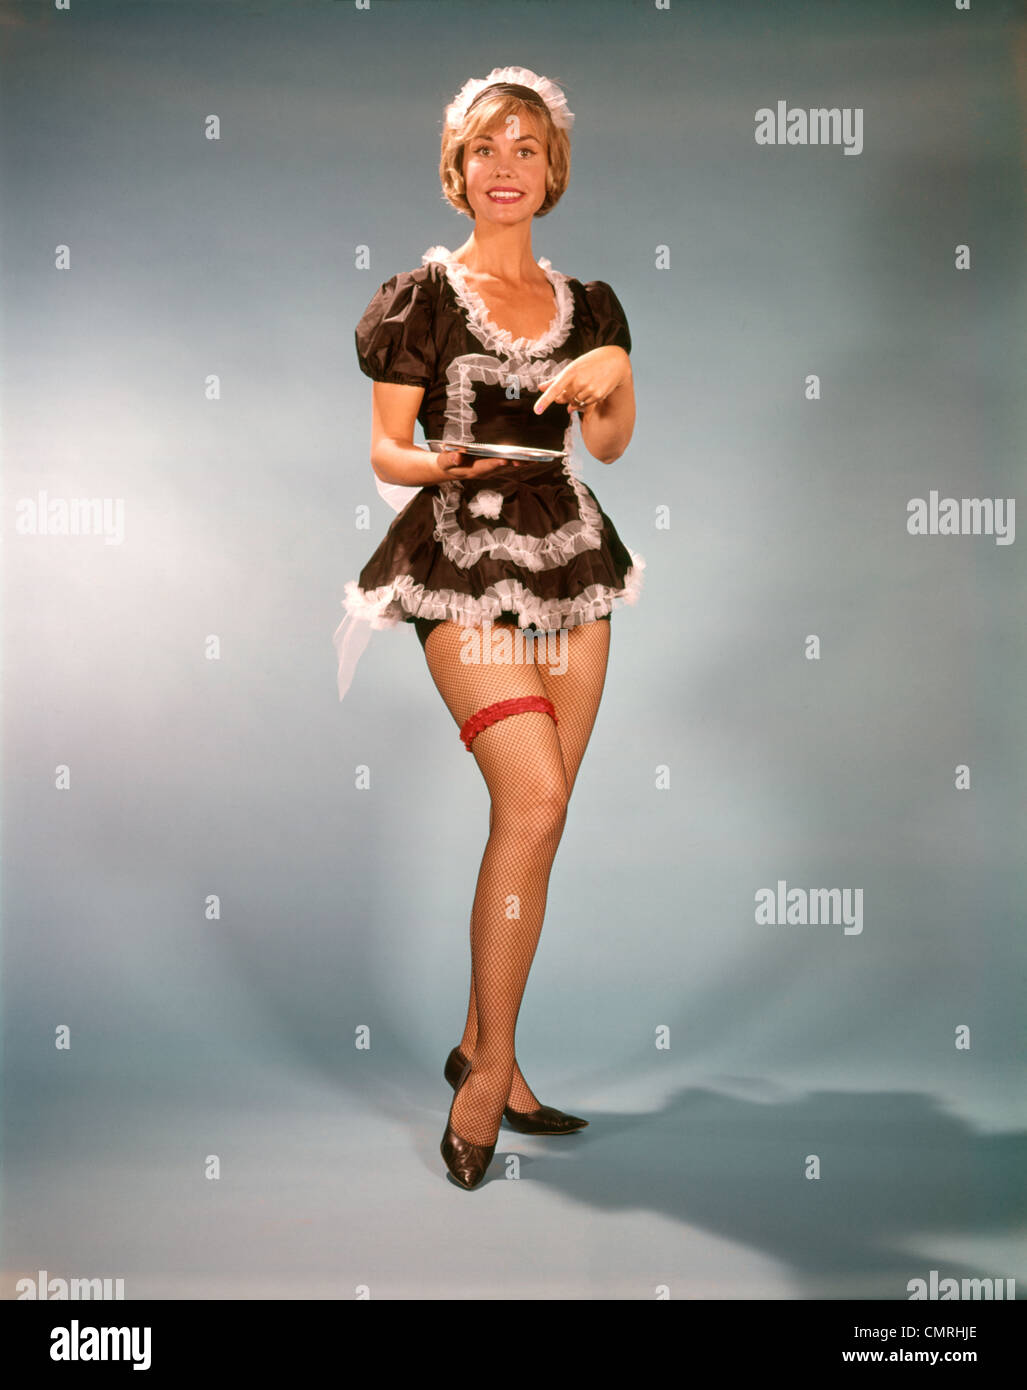 French Maid Photo